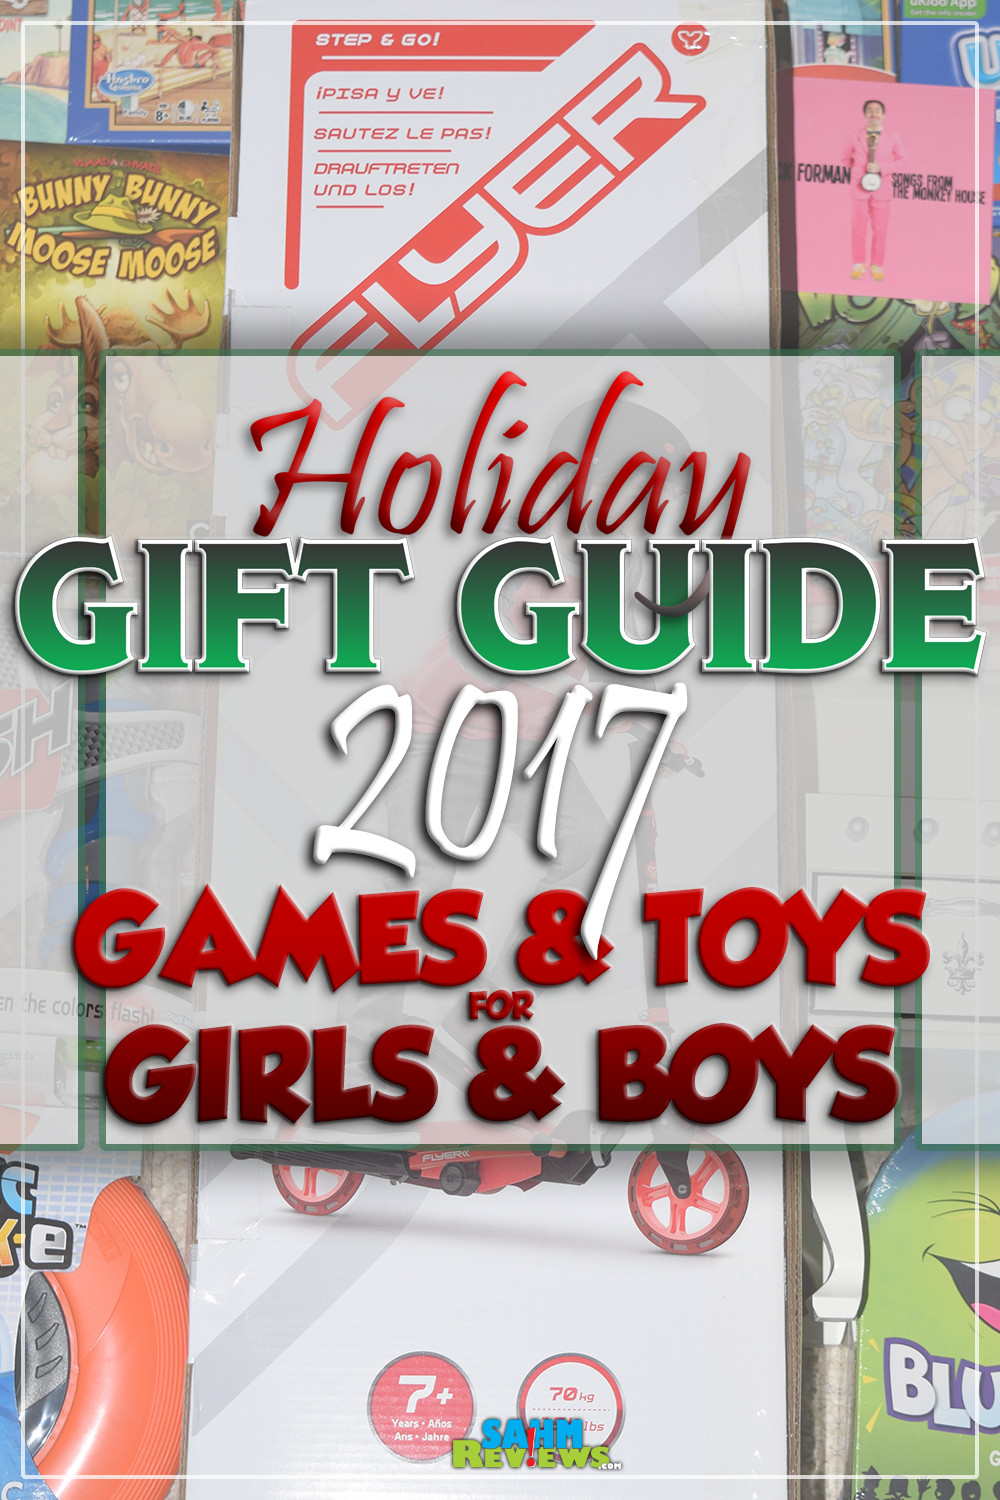 Need gift ideas for the good girls and boys on your shopping list? This Gift Guide inspires play and encourages kids' positive energy! - SahmReviews.com